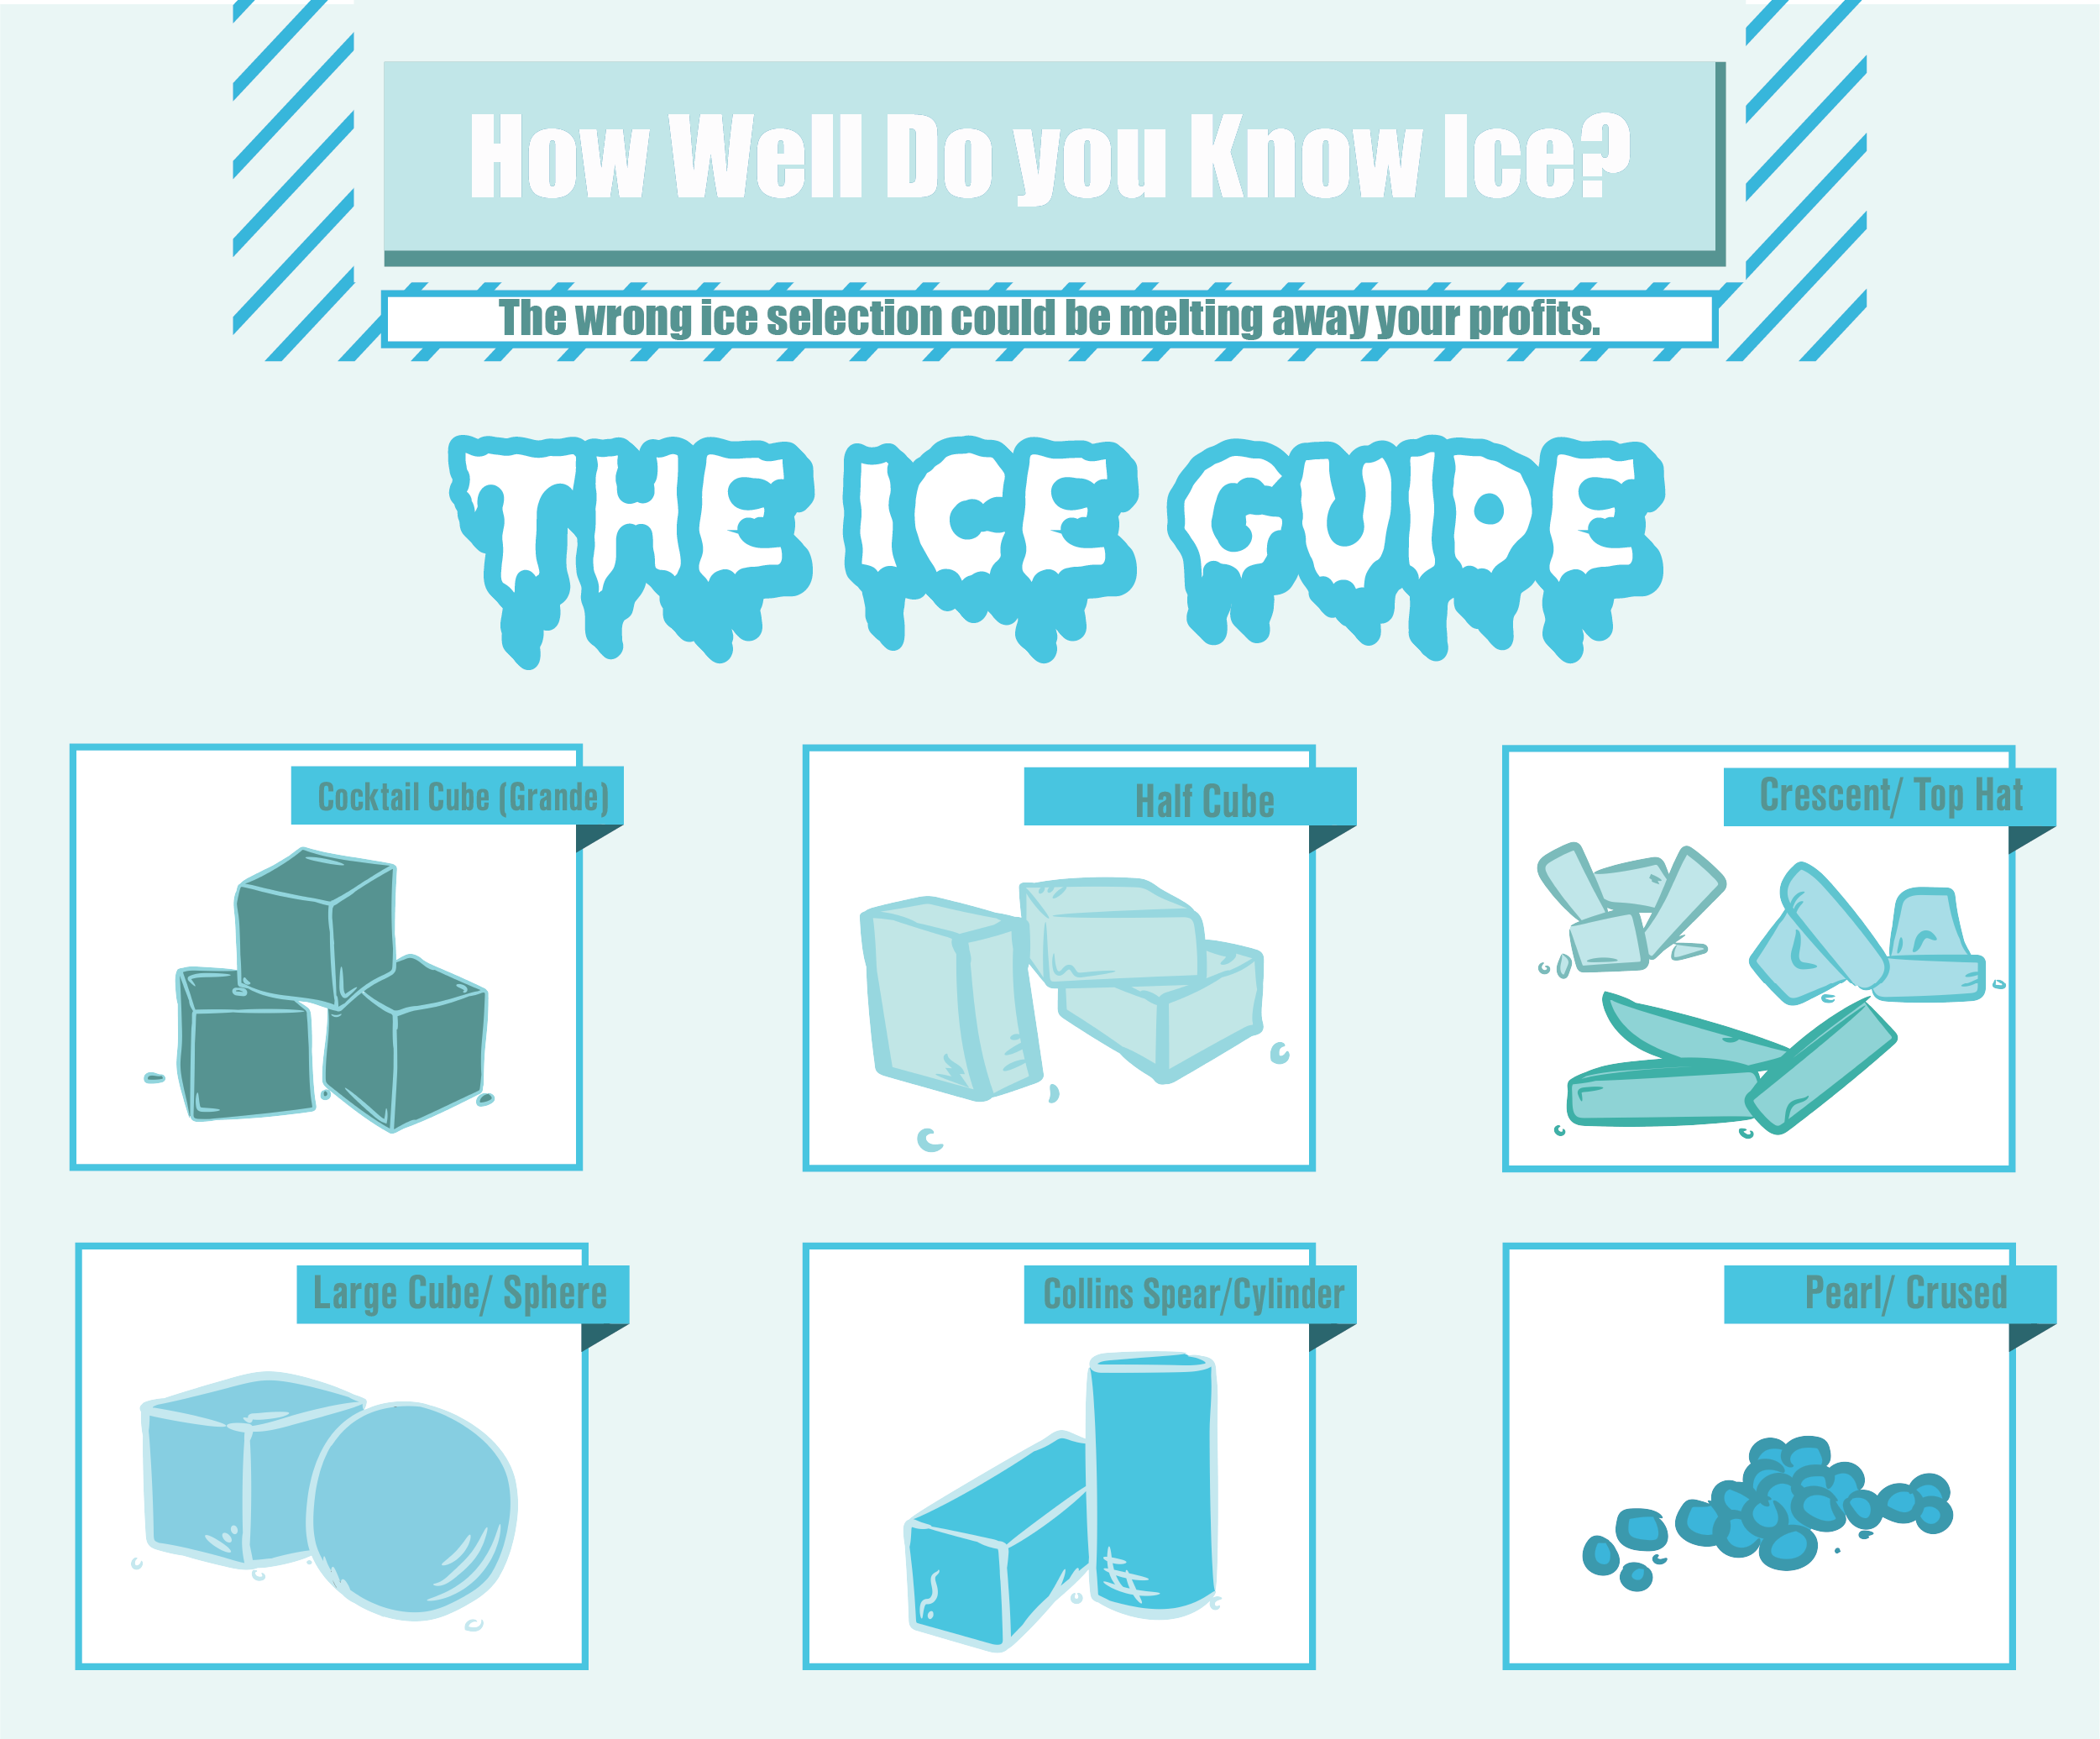 The Ice Guide